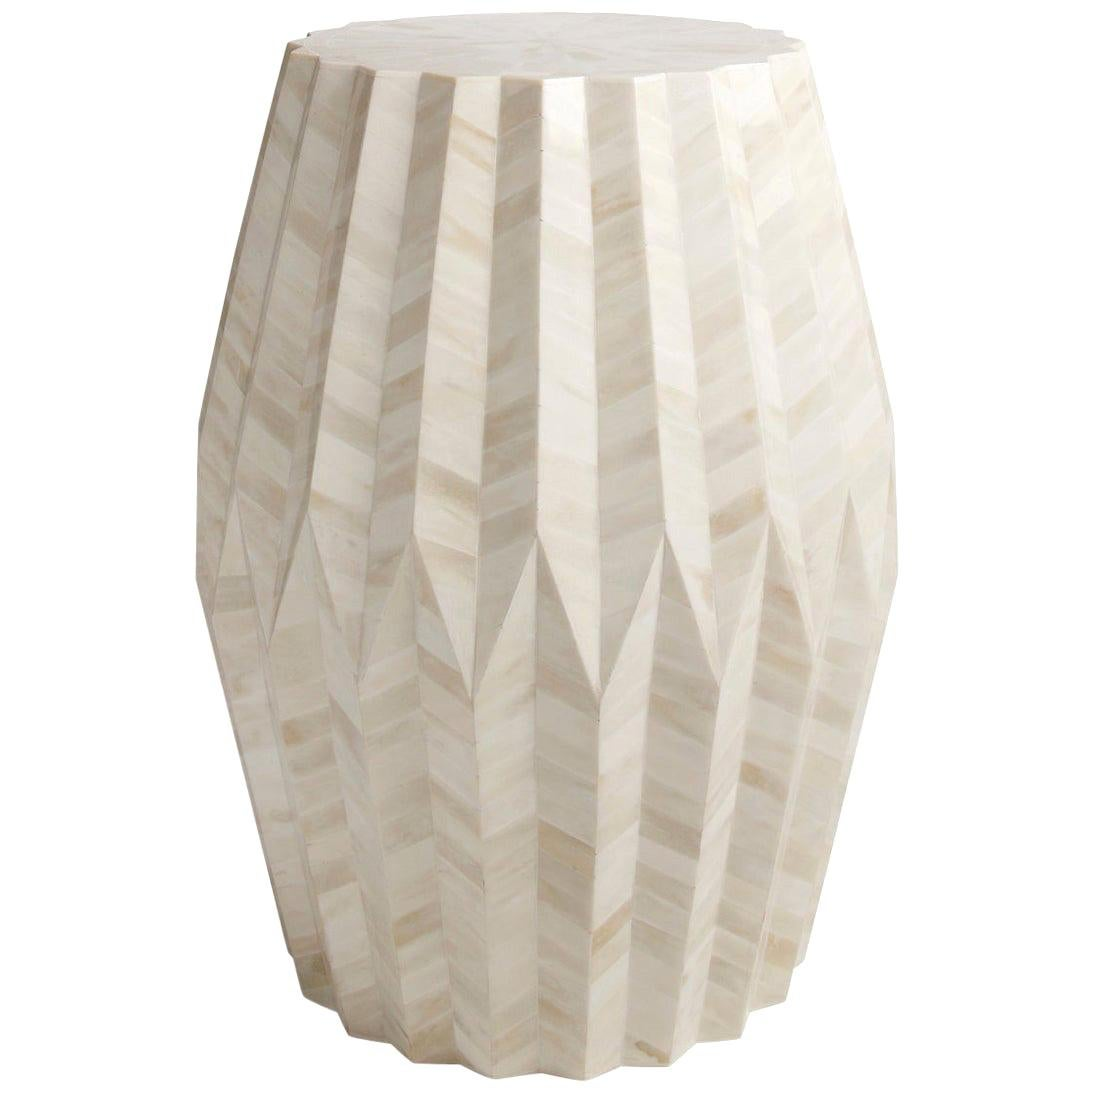 Sculptural Tessellated Bone Marquetry Table, Tabla Table